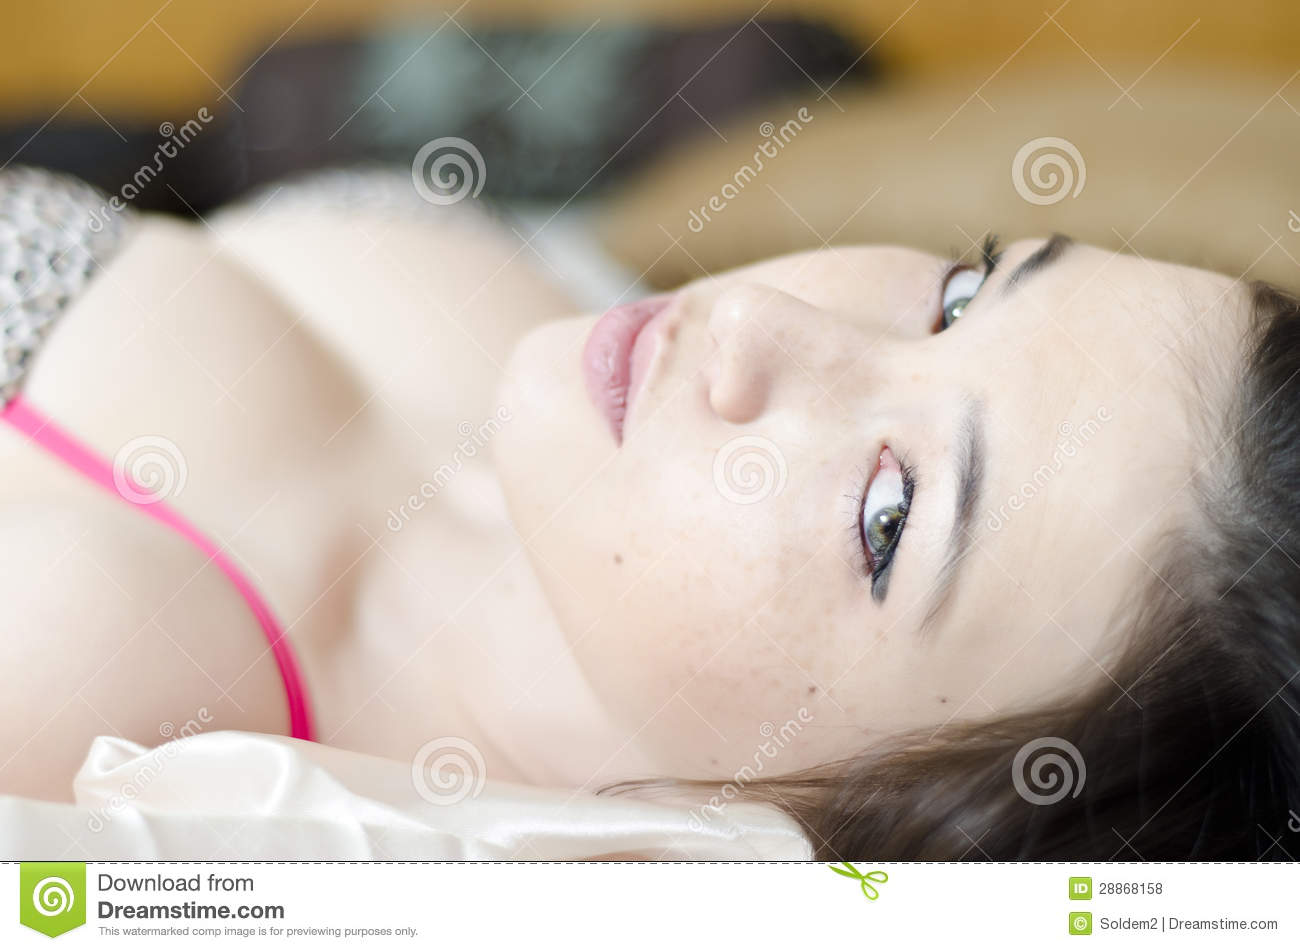 bedroom eyes royalty free stock photos - image: 28868158